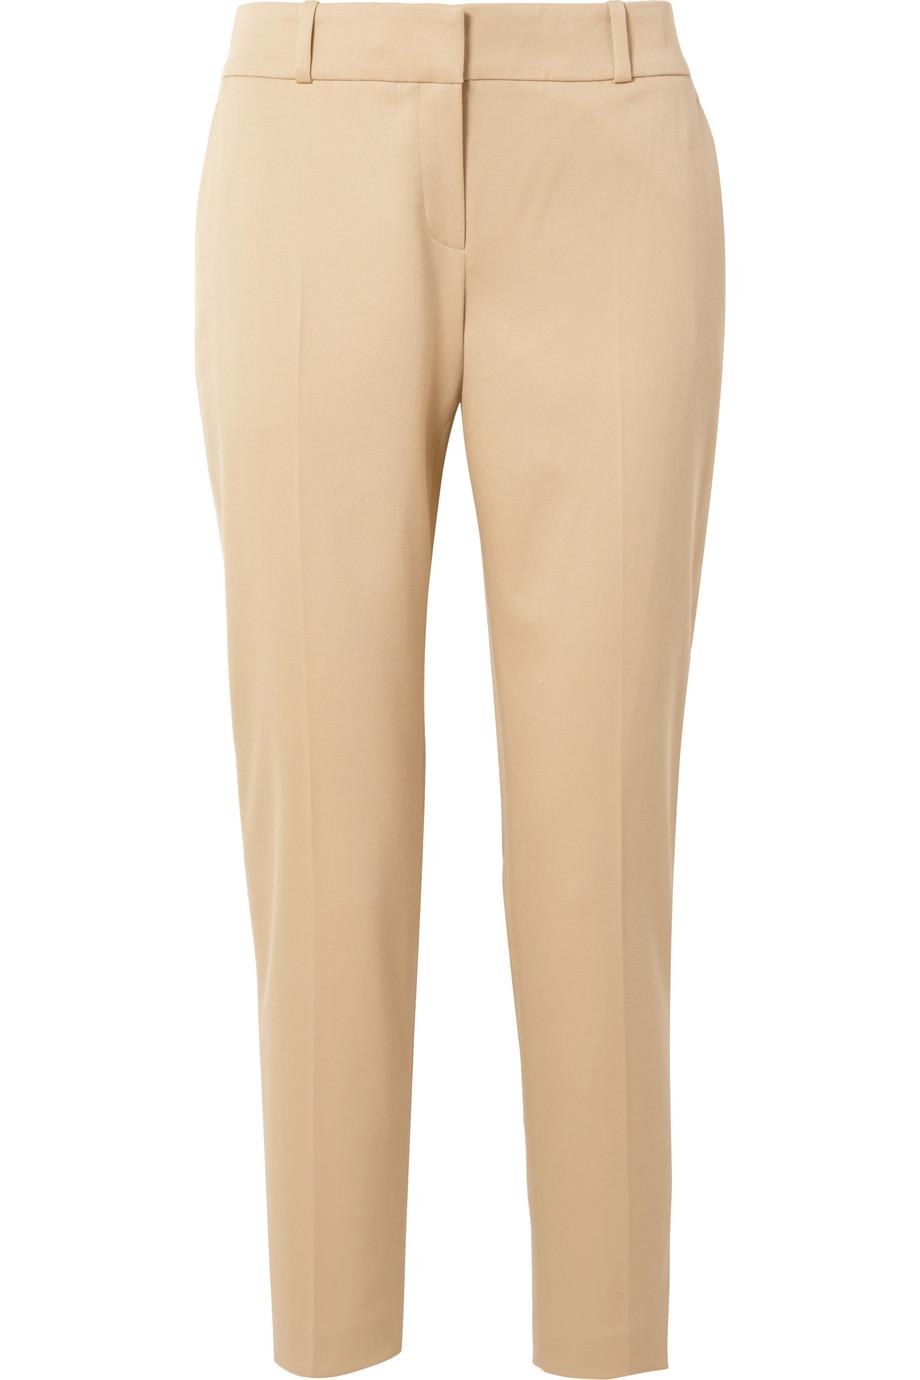 Blake Stretch-wool Twill Straight-leg Pants - Beige The Row voJSxo9V